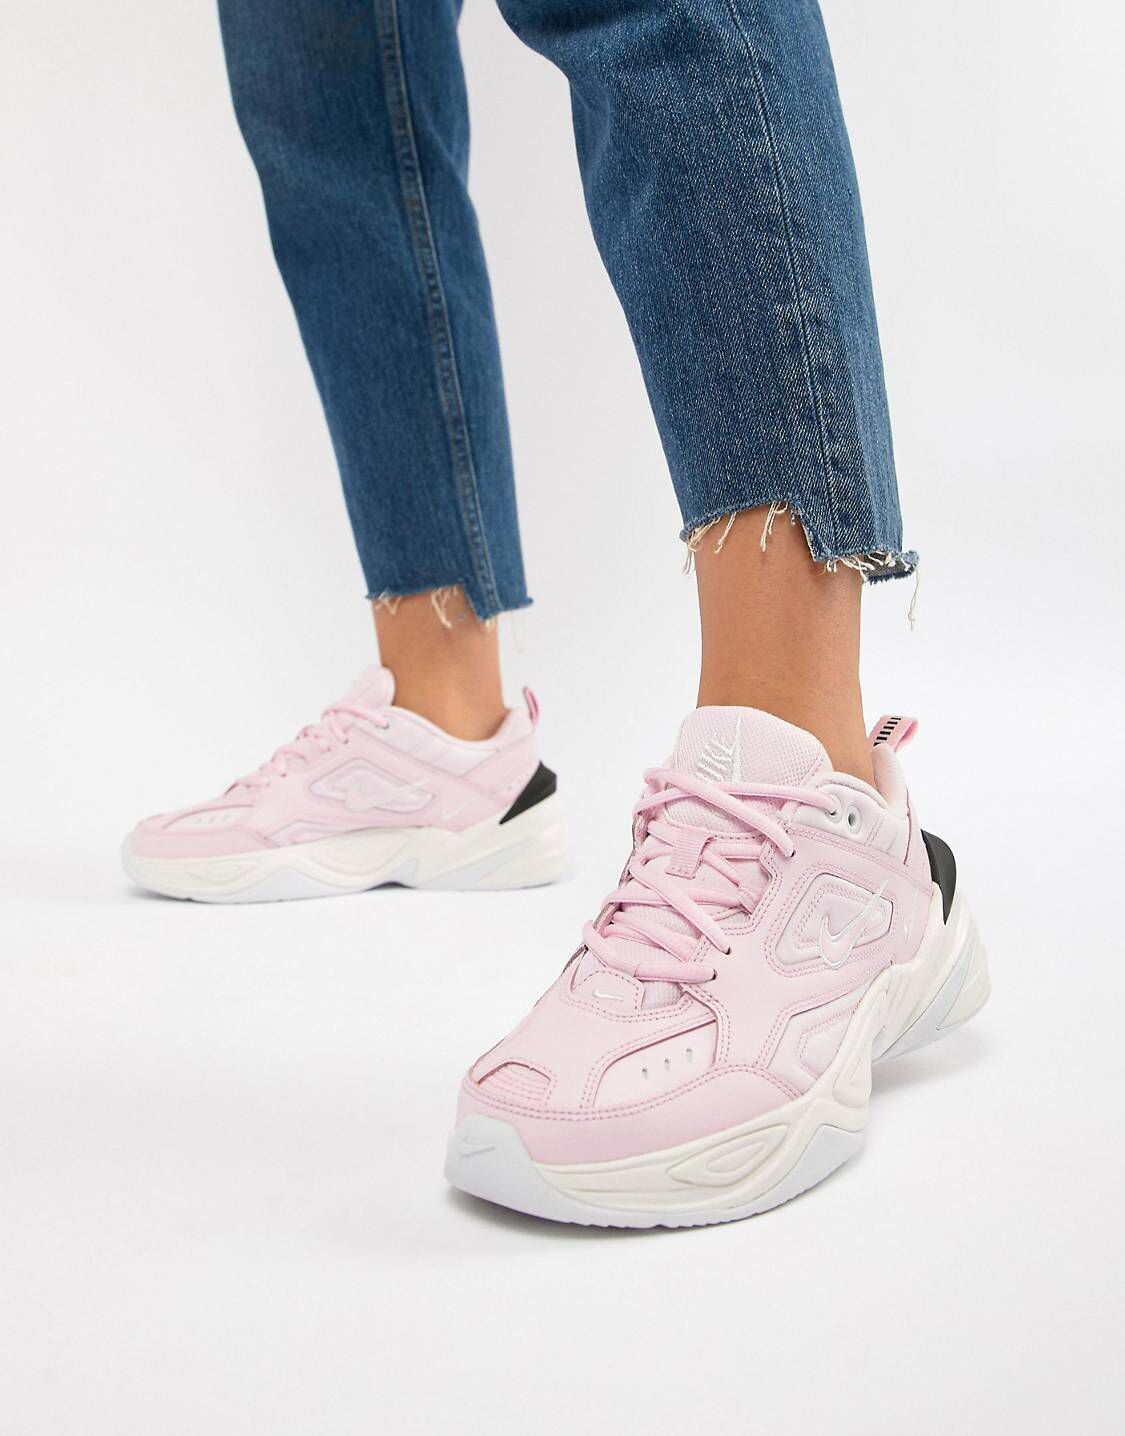 bece001ab8b354 Shop Nike Pink With Contrast Sole Tekno Trainers at ASOS. Just when I  thought I didn t need something new from ASOS